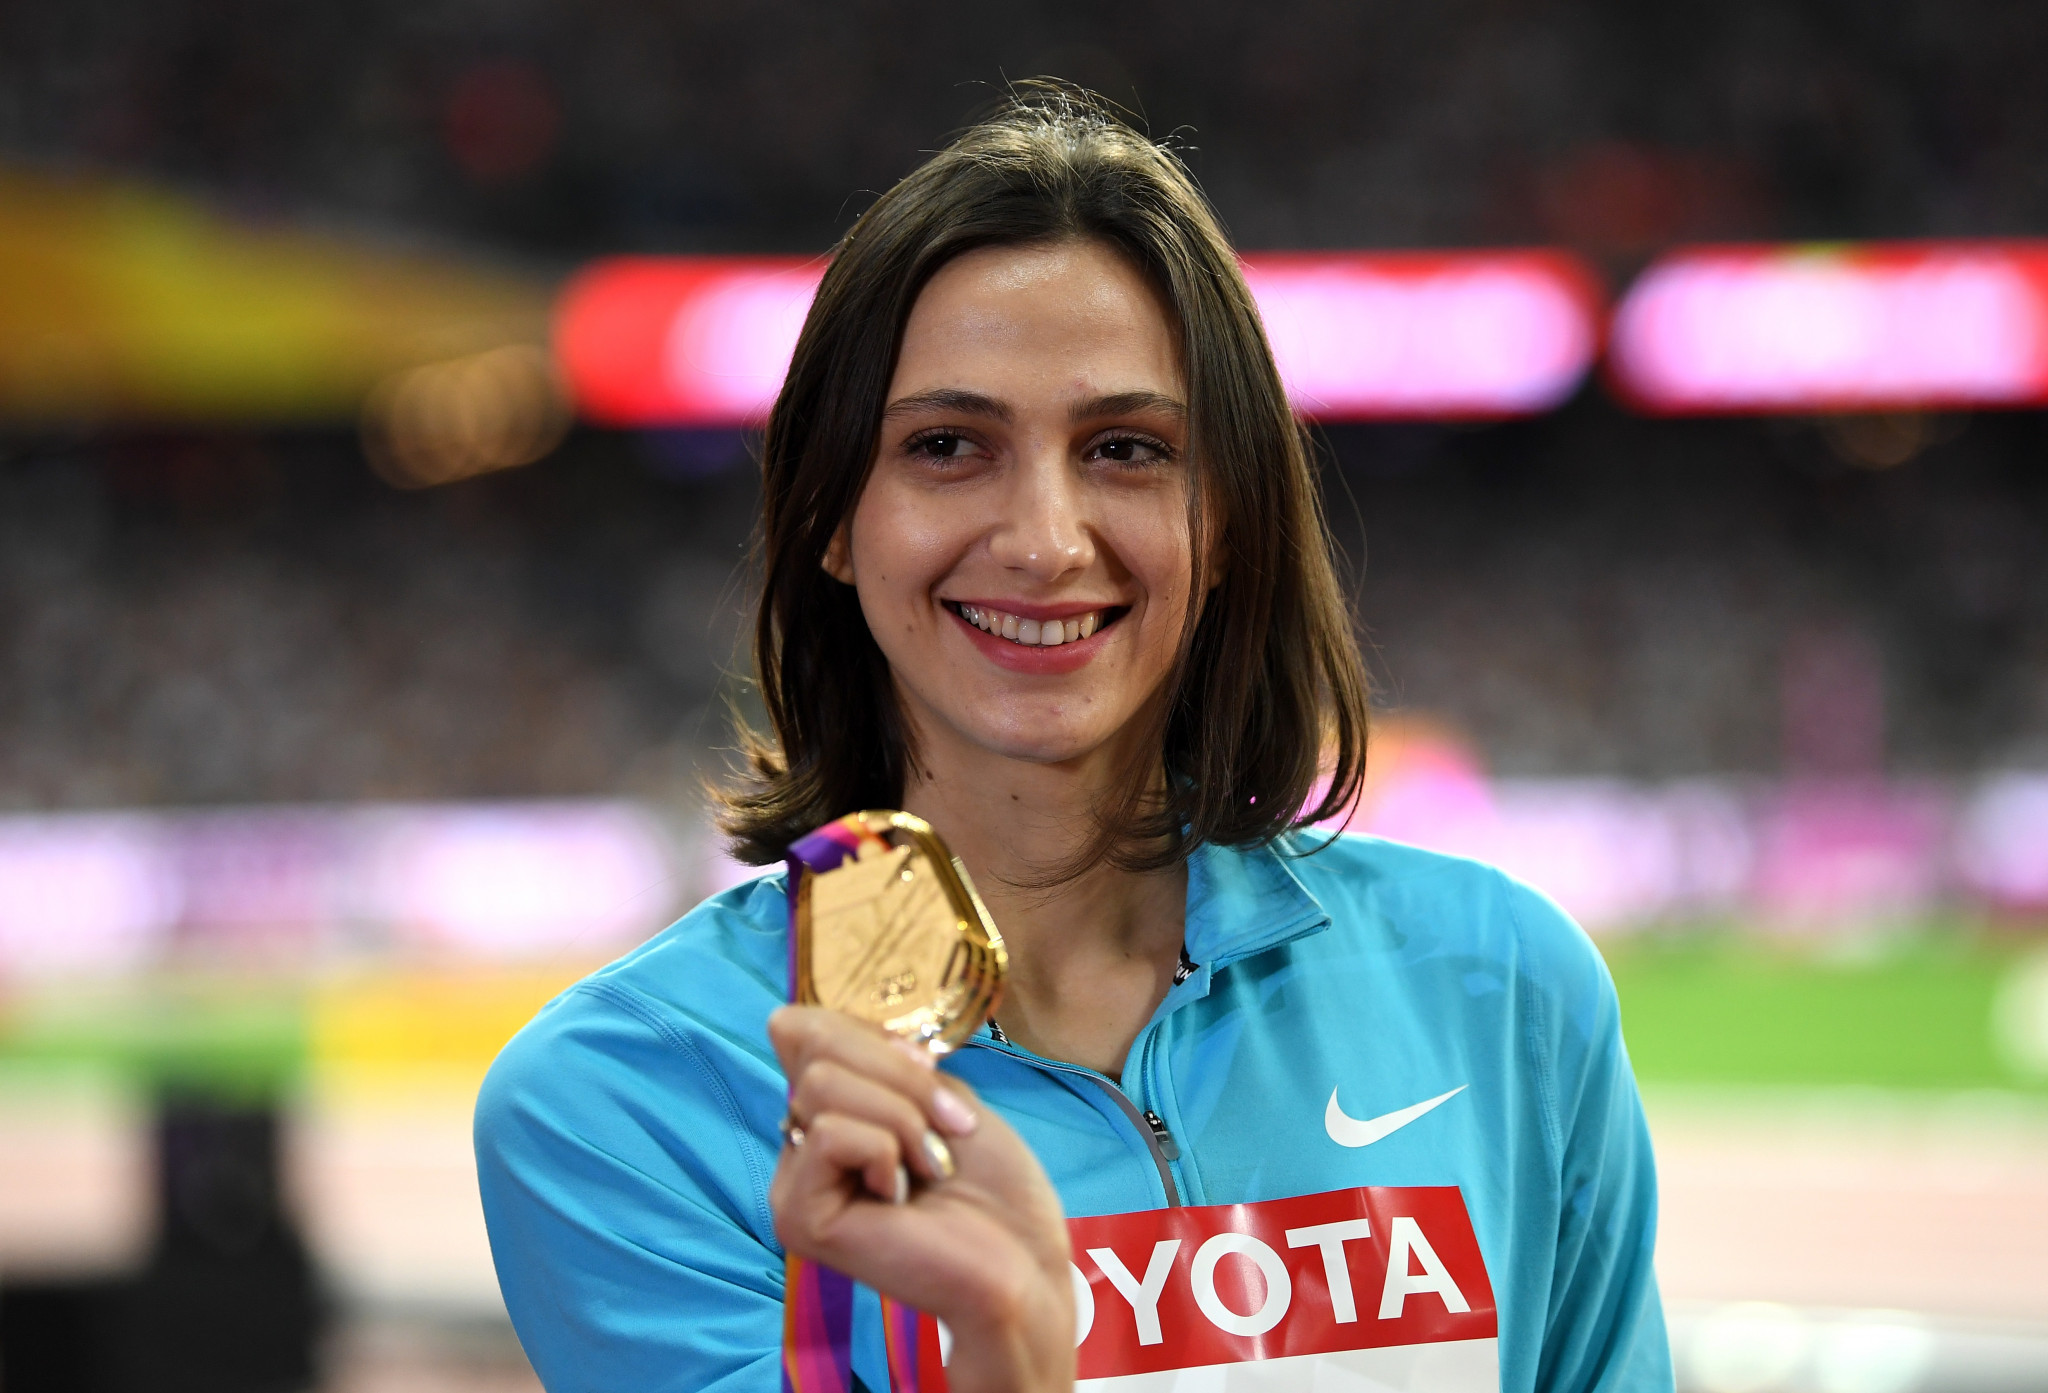 Mariya Lasitskene still believes doping is a serious issue in Russia ©Getty Images